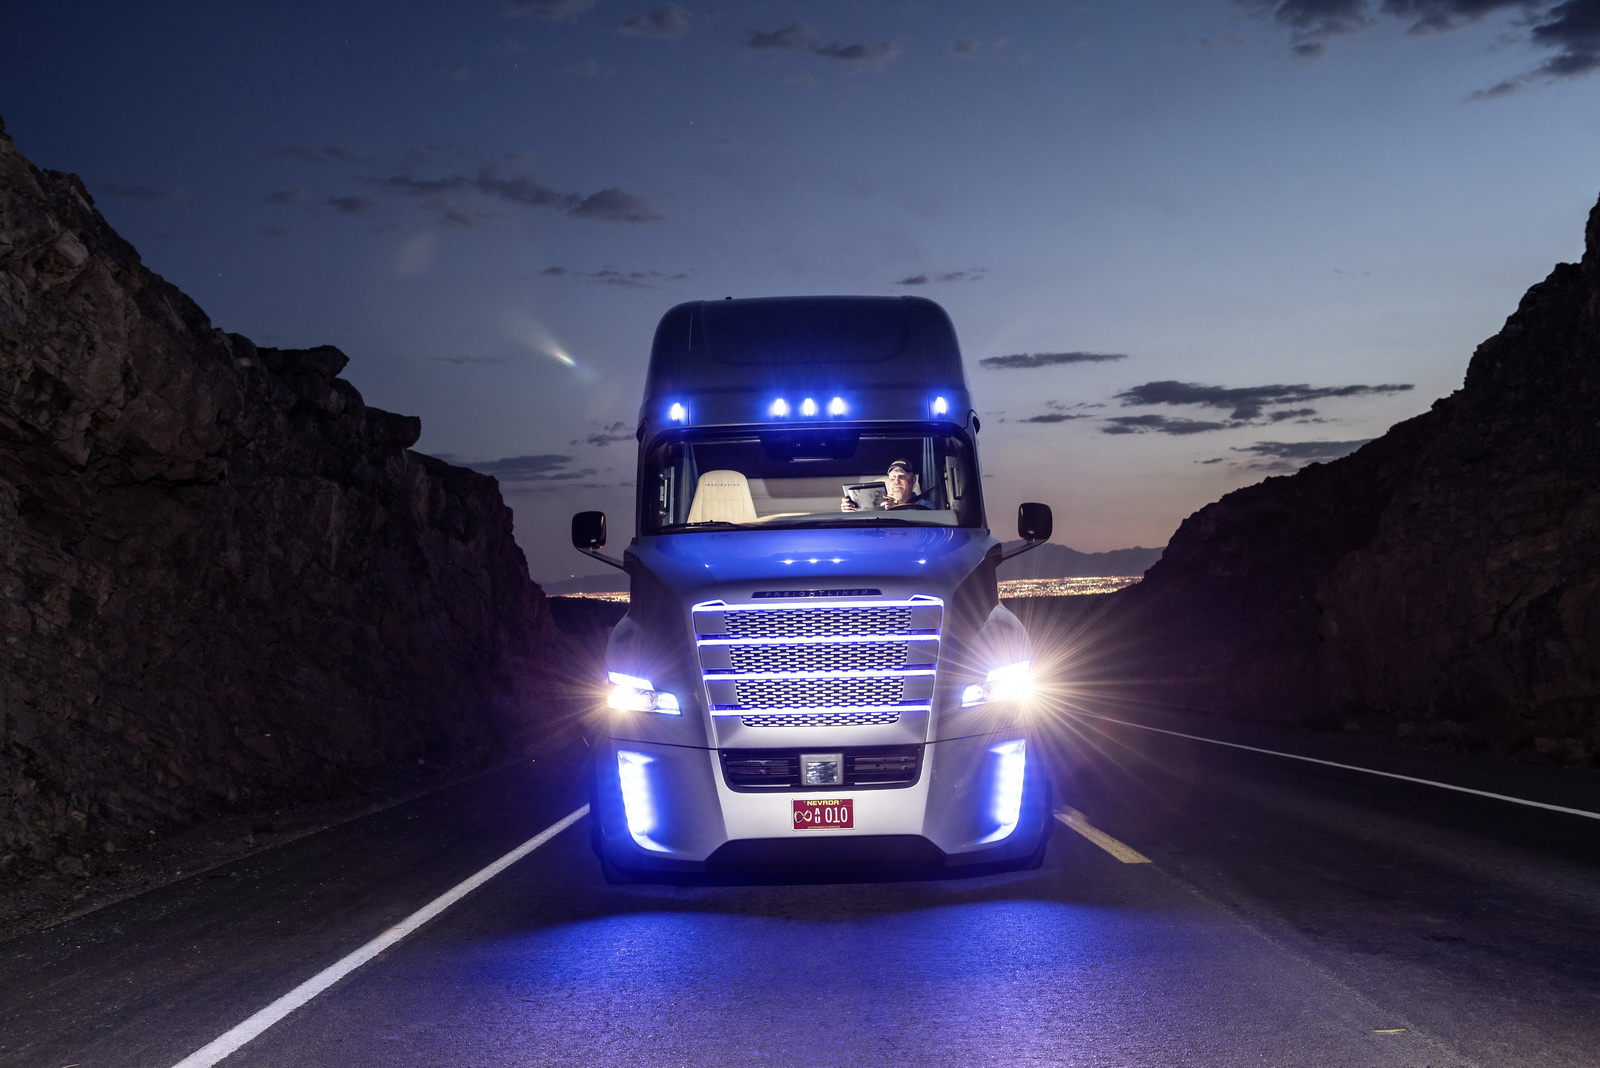 Freightliner Inspiration Truck Can Now Self Drive Itself